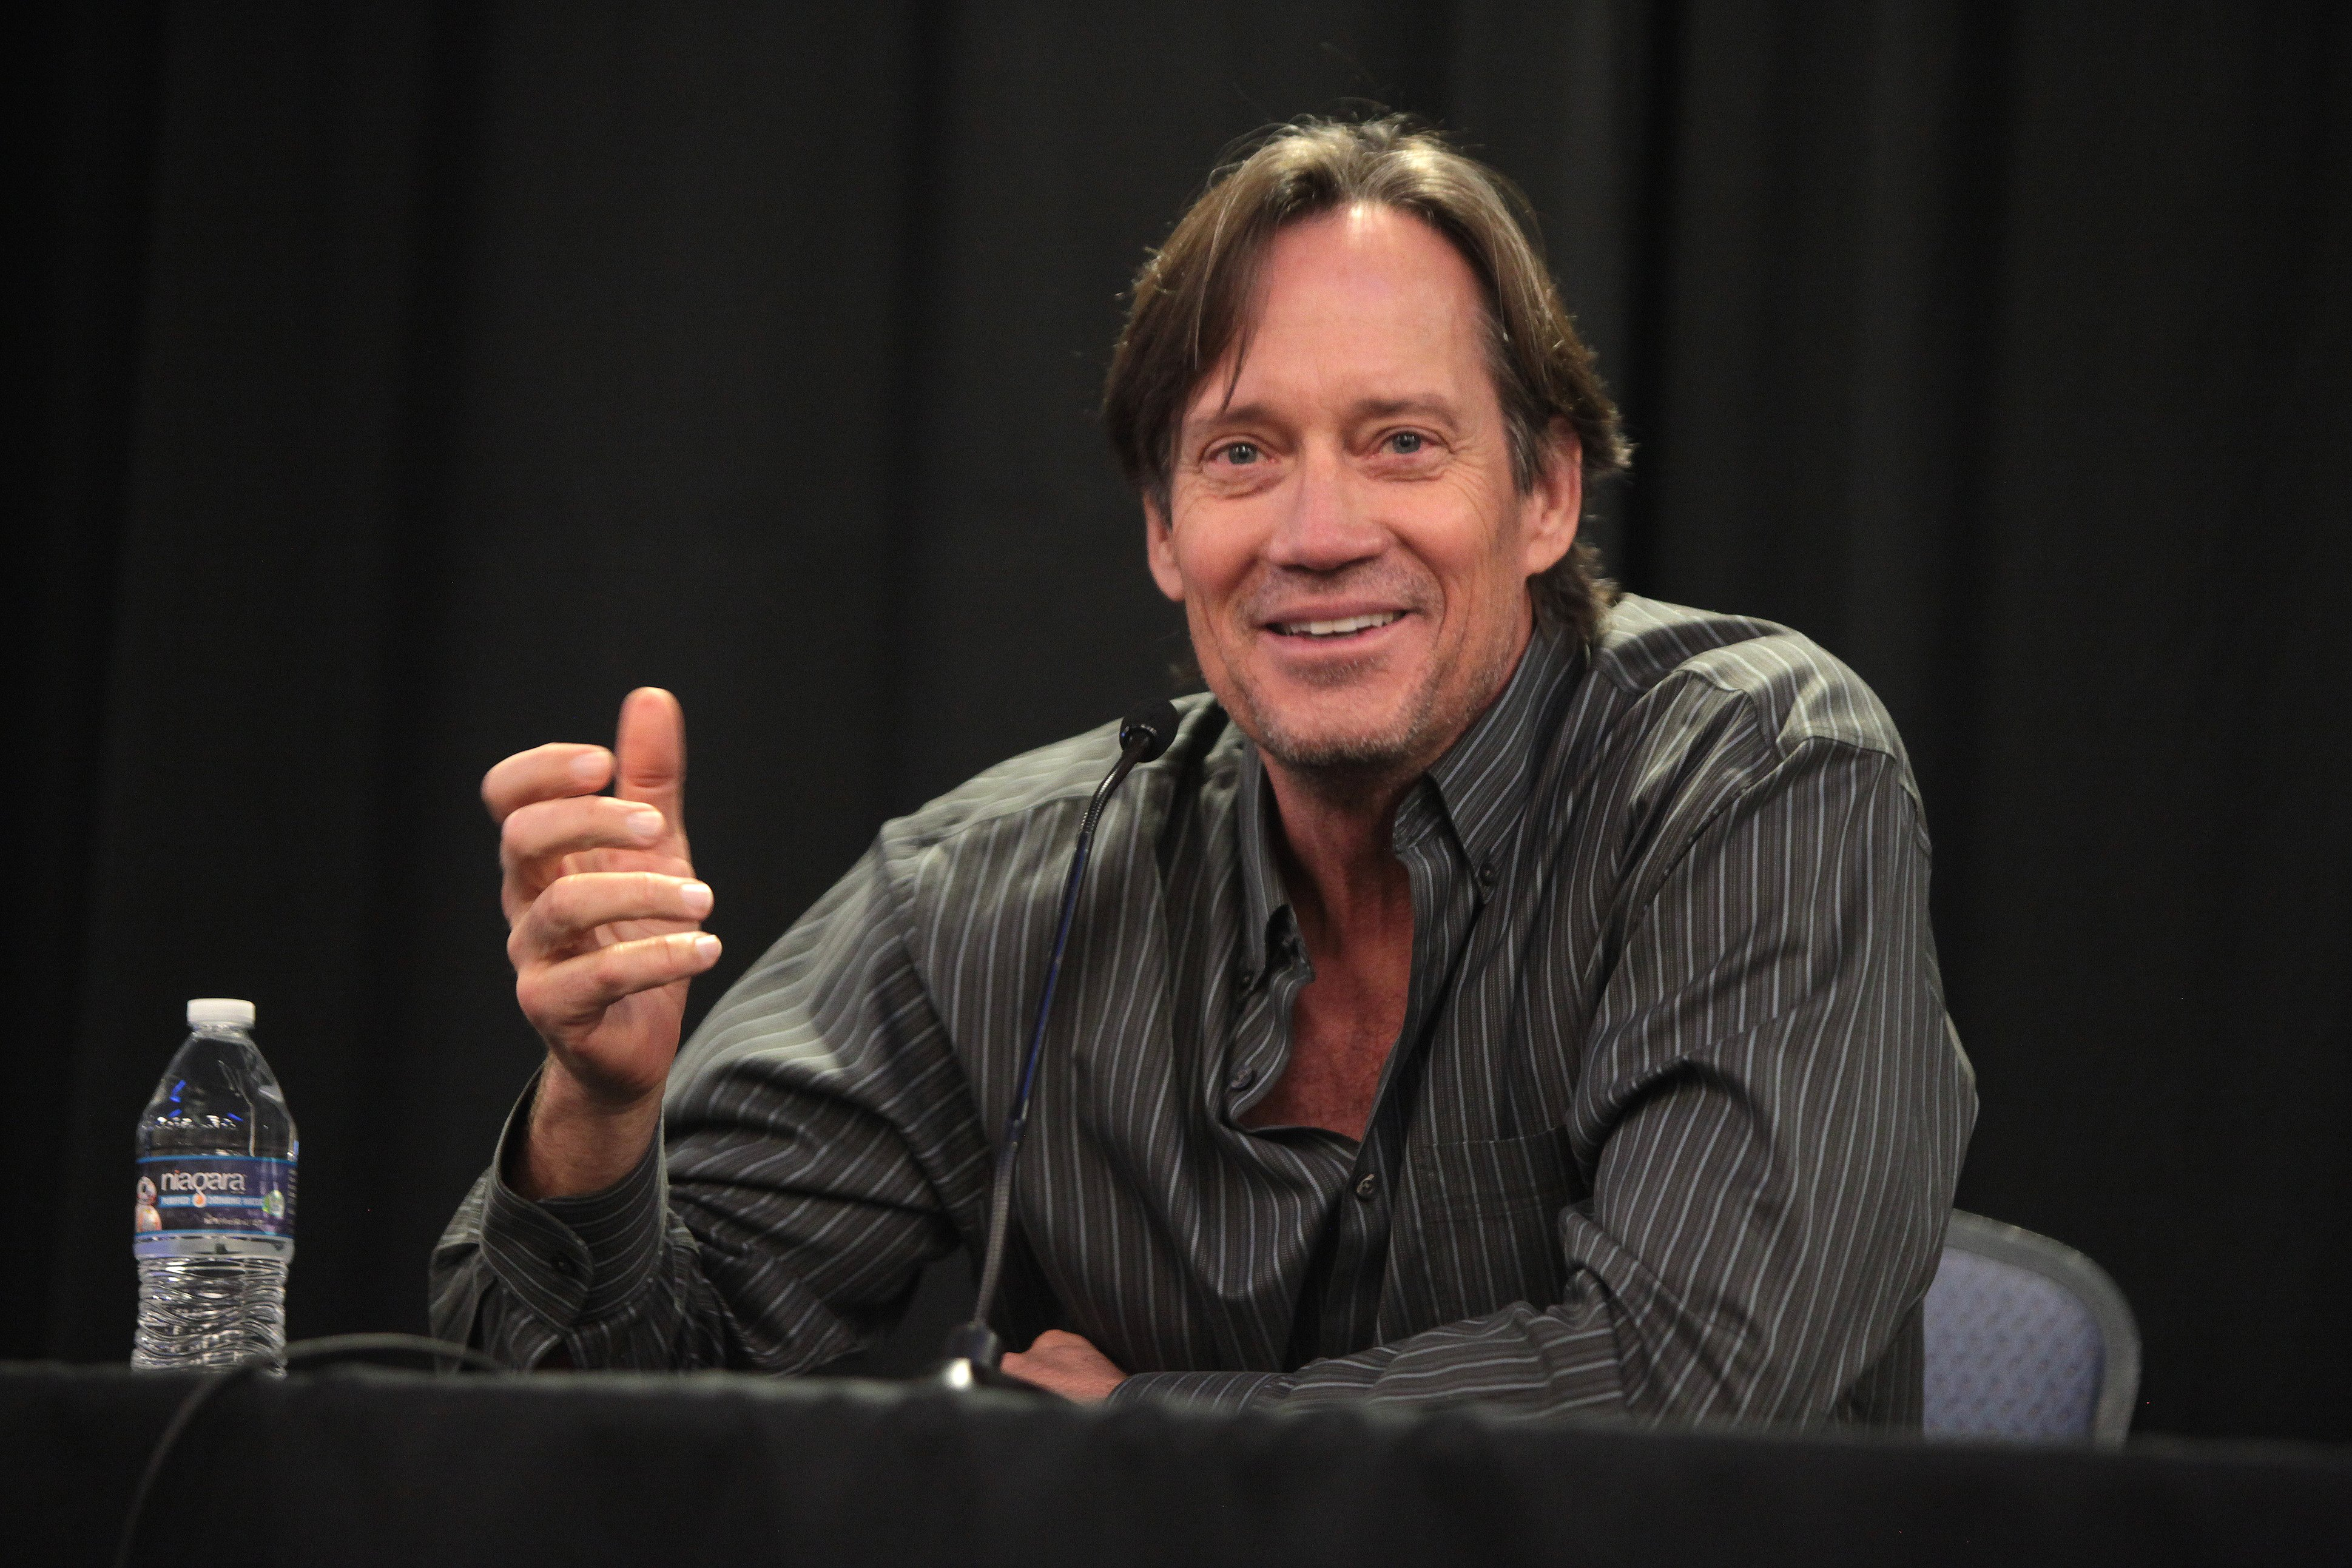 Kevin Sorbo at the 2015 Phoenix Comicon Fan Fest. | Source: Wikimedia Commons